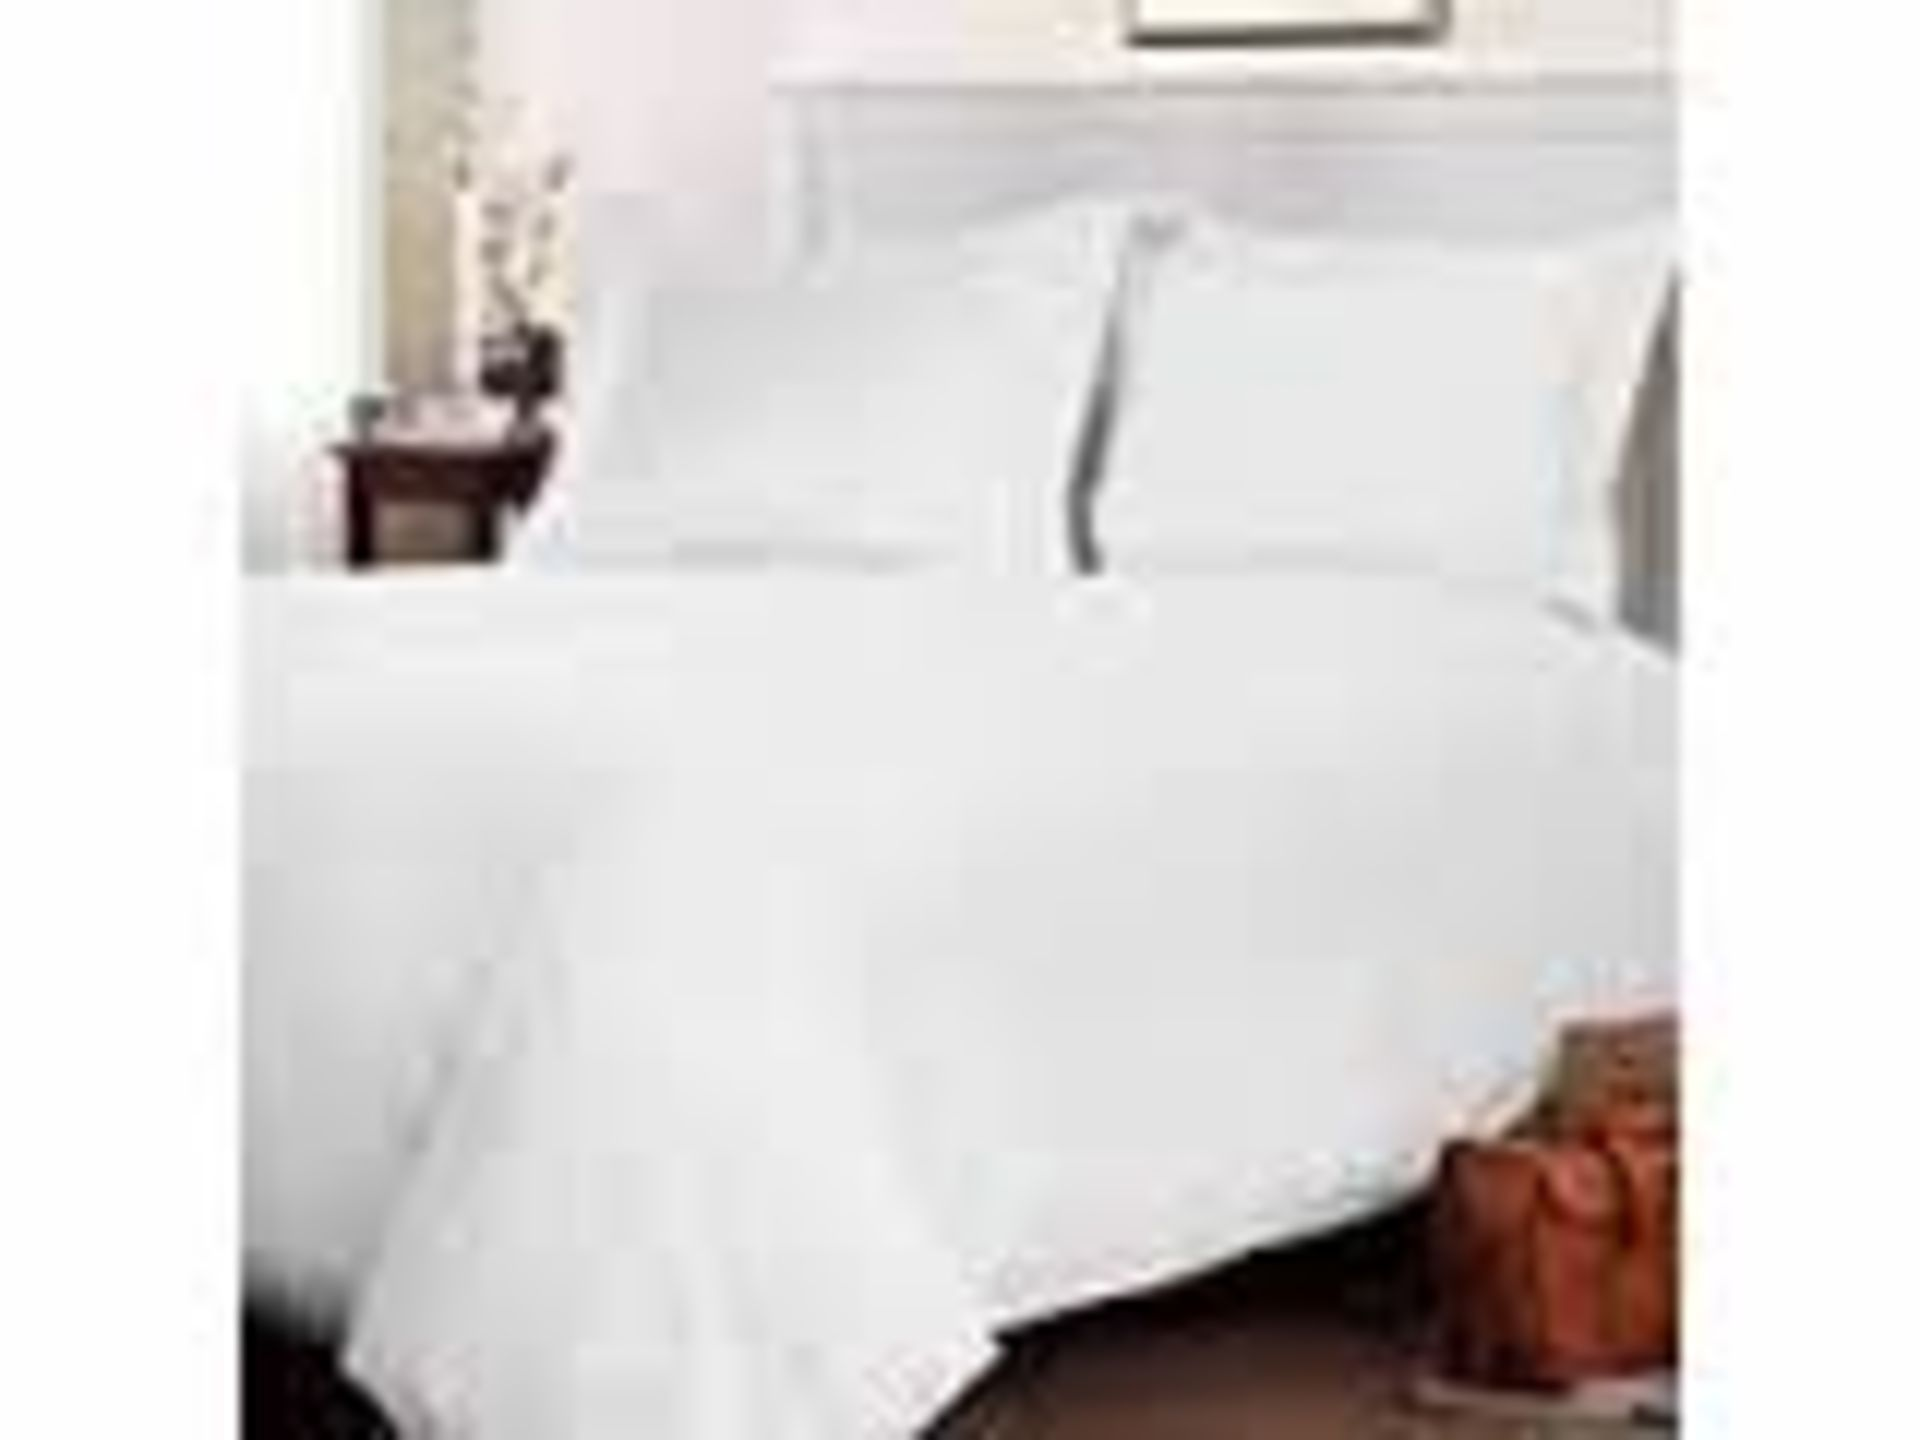 Lot 12536 - V Brand New Luxury Double Bed Plain Dye Fitted Sheets